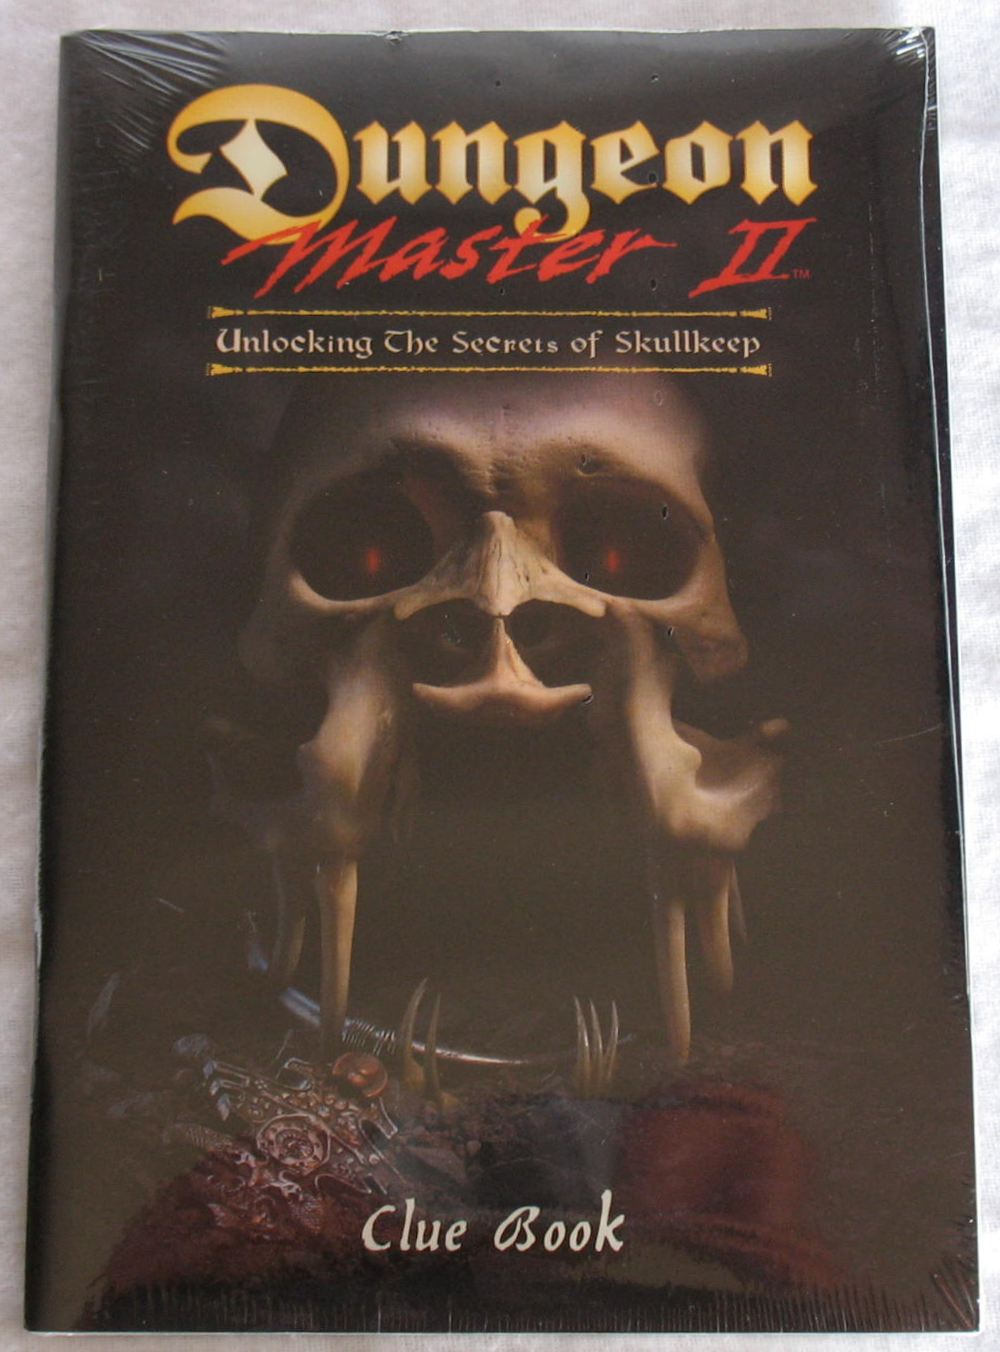 Hint Book - Dungeon Master II Clue Book - US - All - Overview - Photo